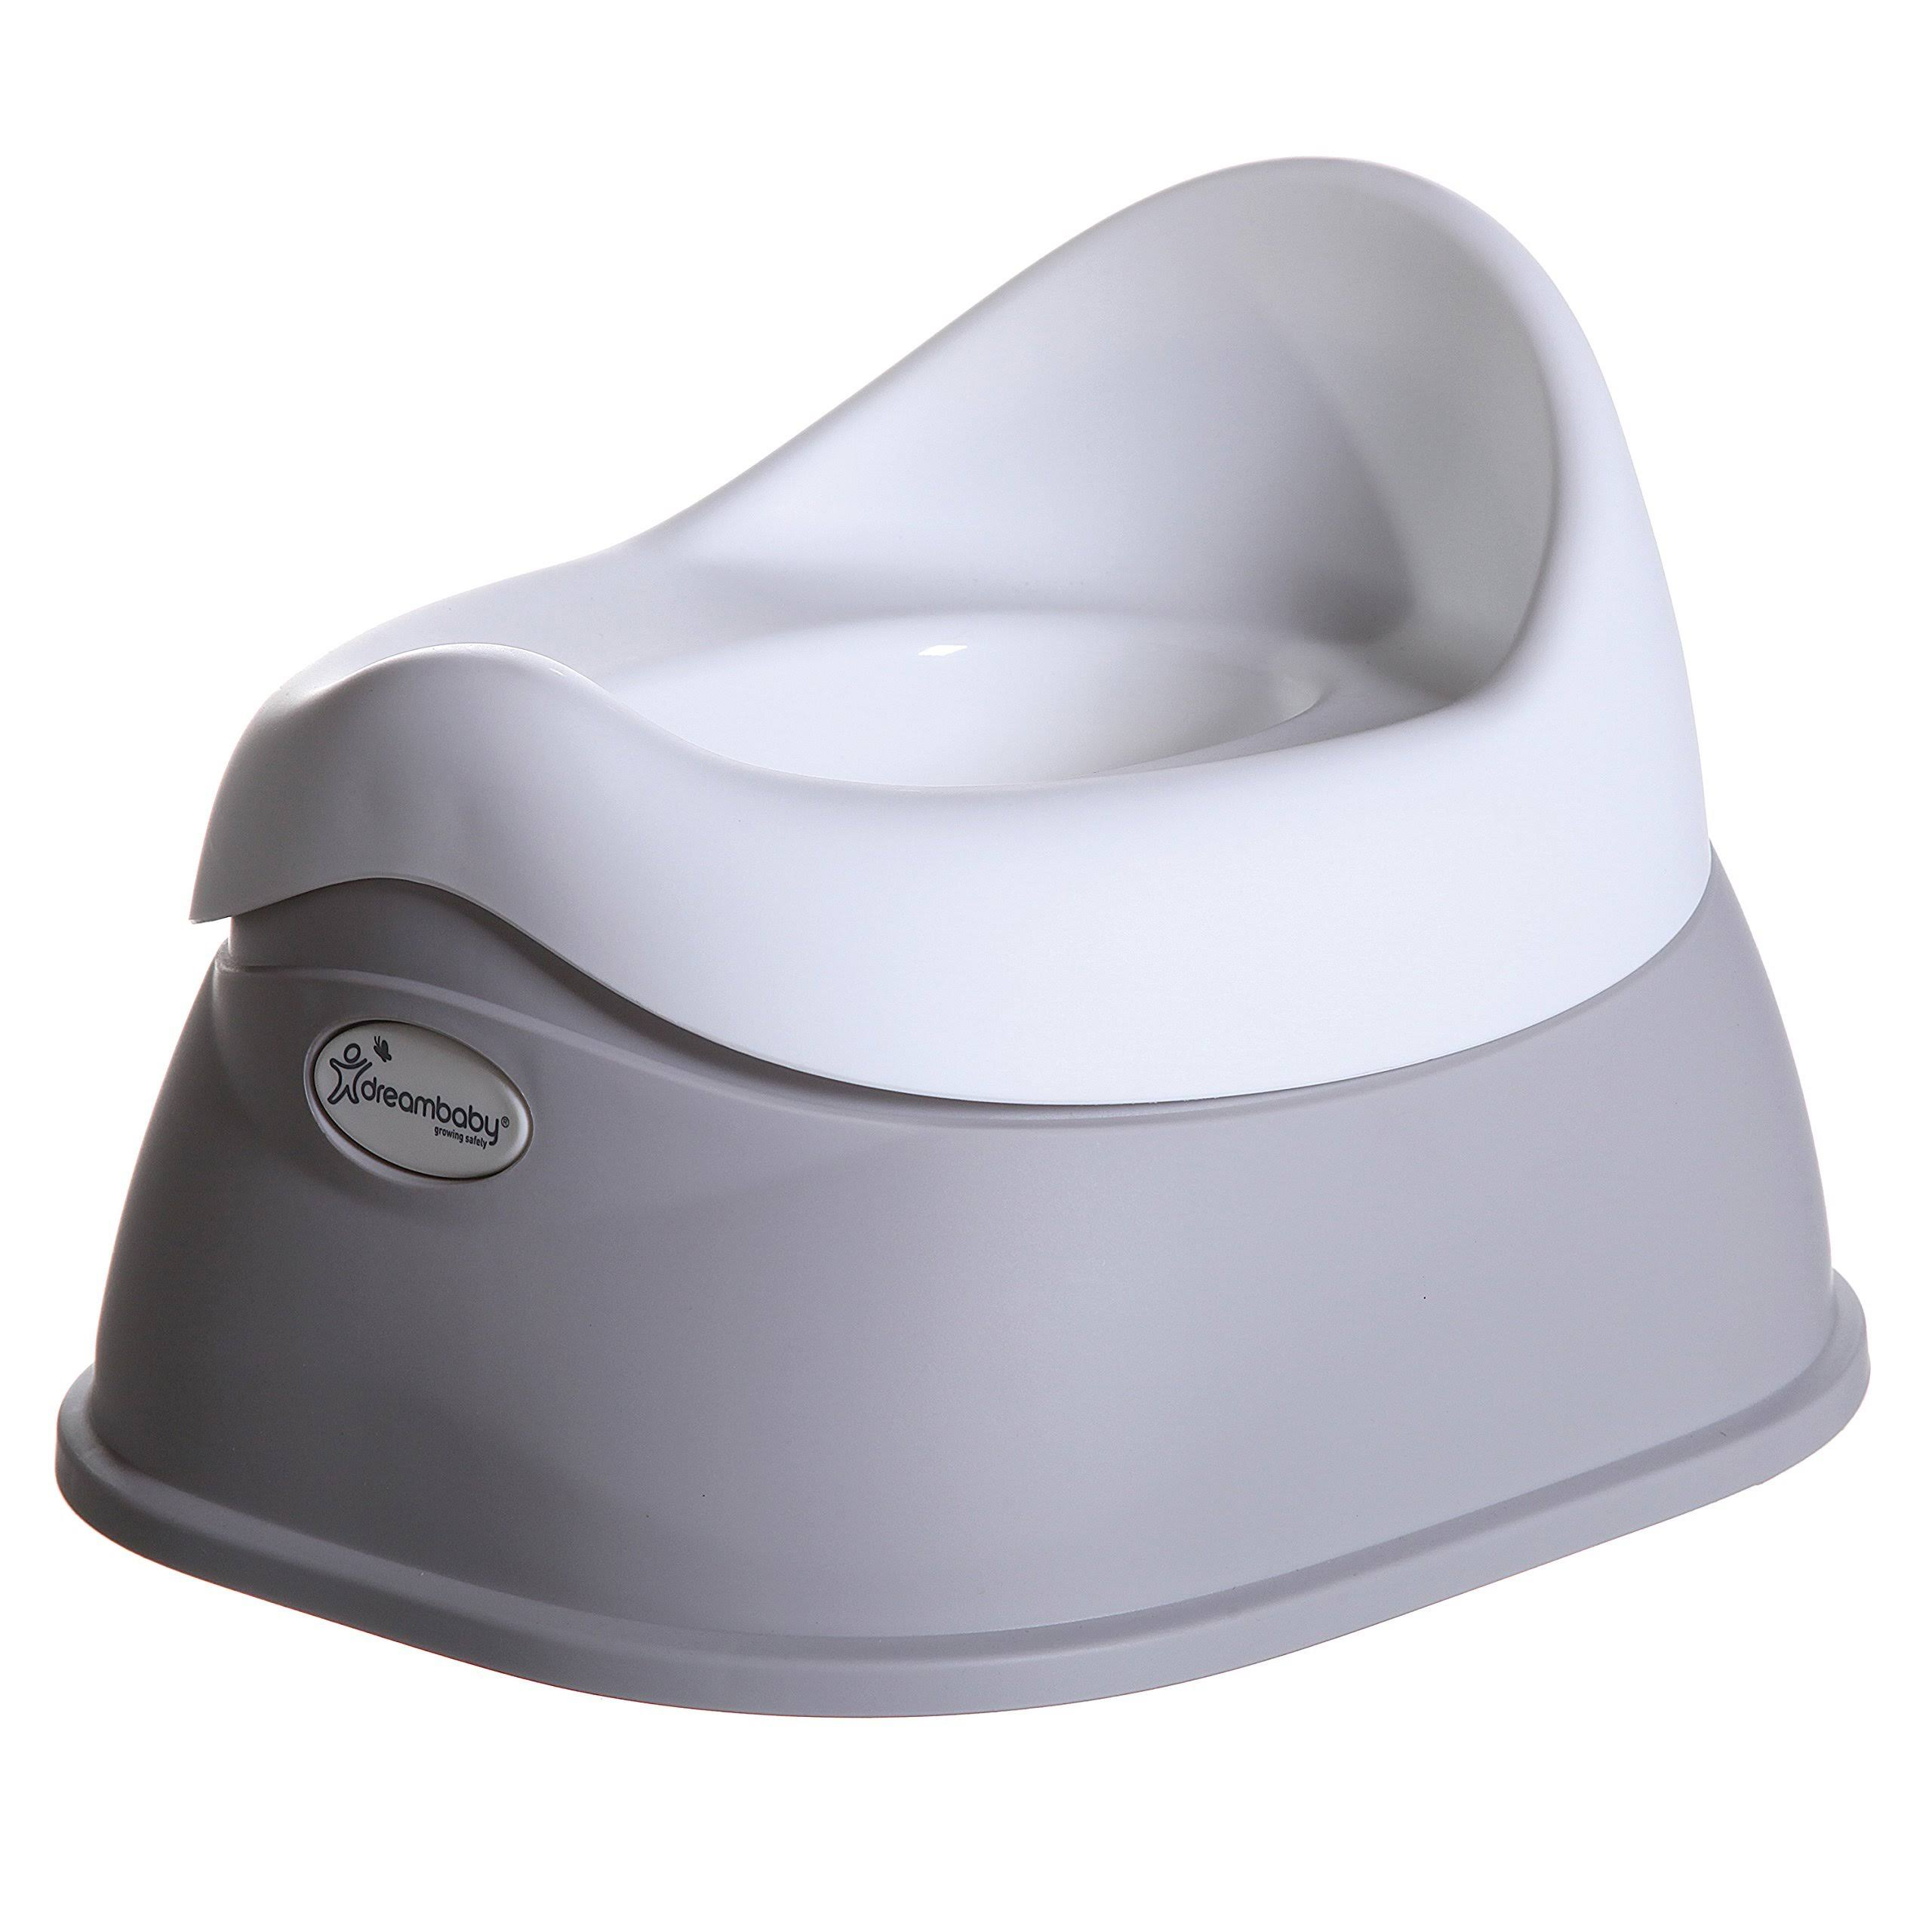 Dreambaby Ezy Potty (with Removable Bowl) - Grey